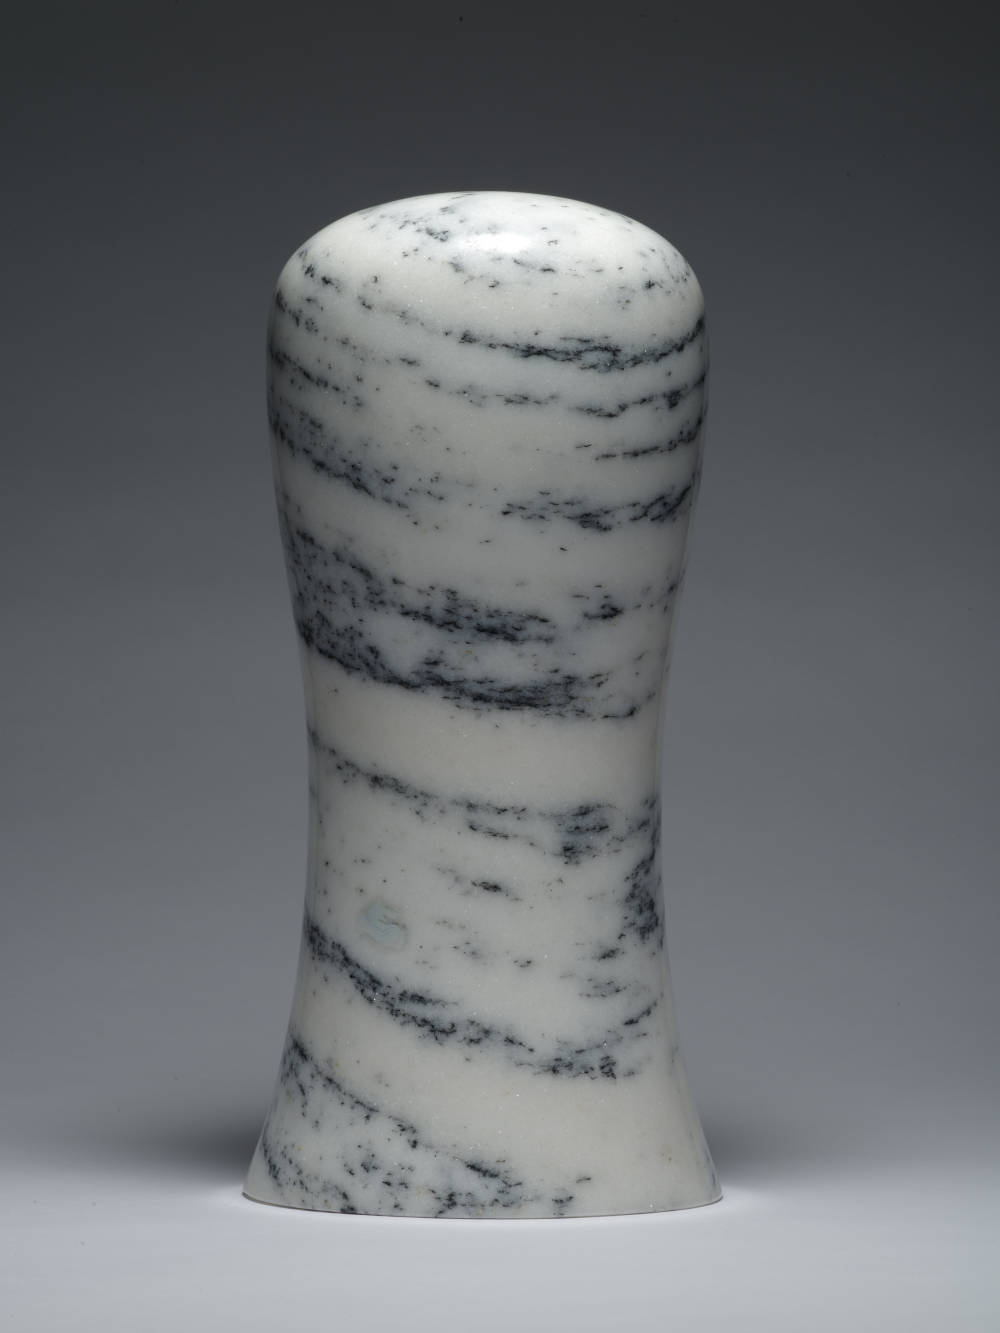 Zhao Zhao, Control 9, 2019. Natural marble 13.78 x 6.54 x 6.54 in (35.0 x 16.6 x 16.6 cm) Courtesy of the artist and Roberts Projects, Los Angeles, California